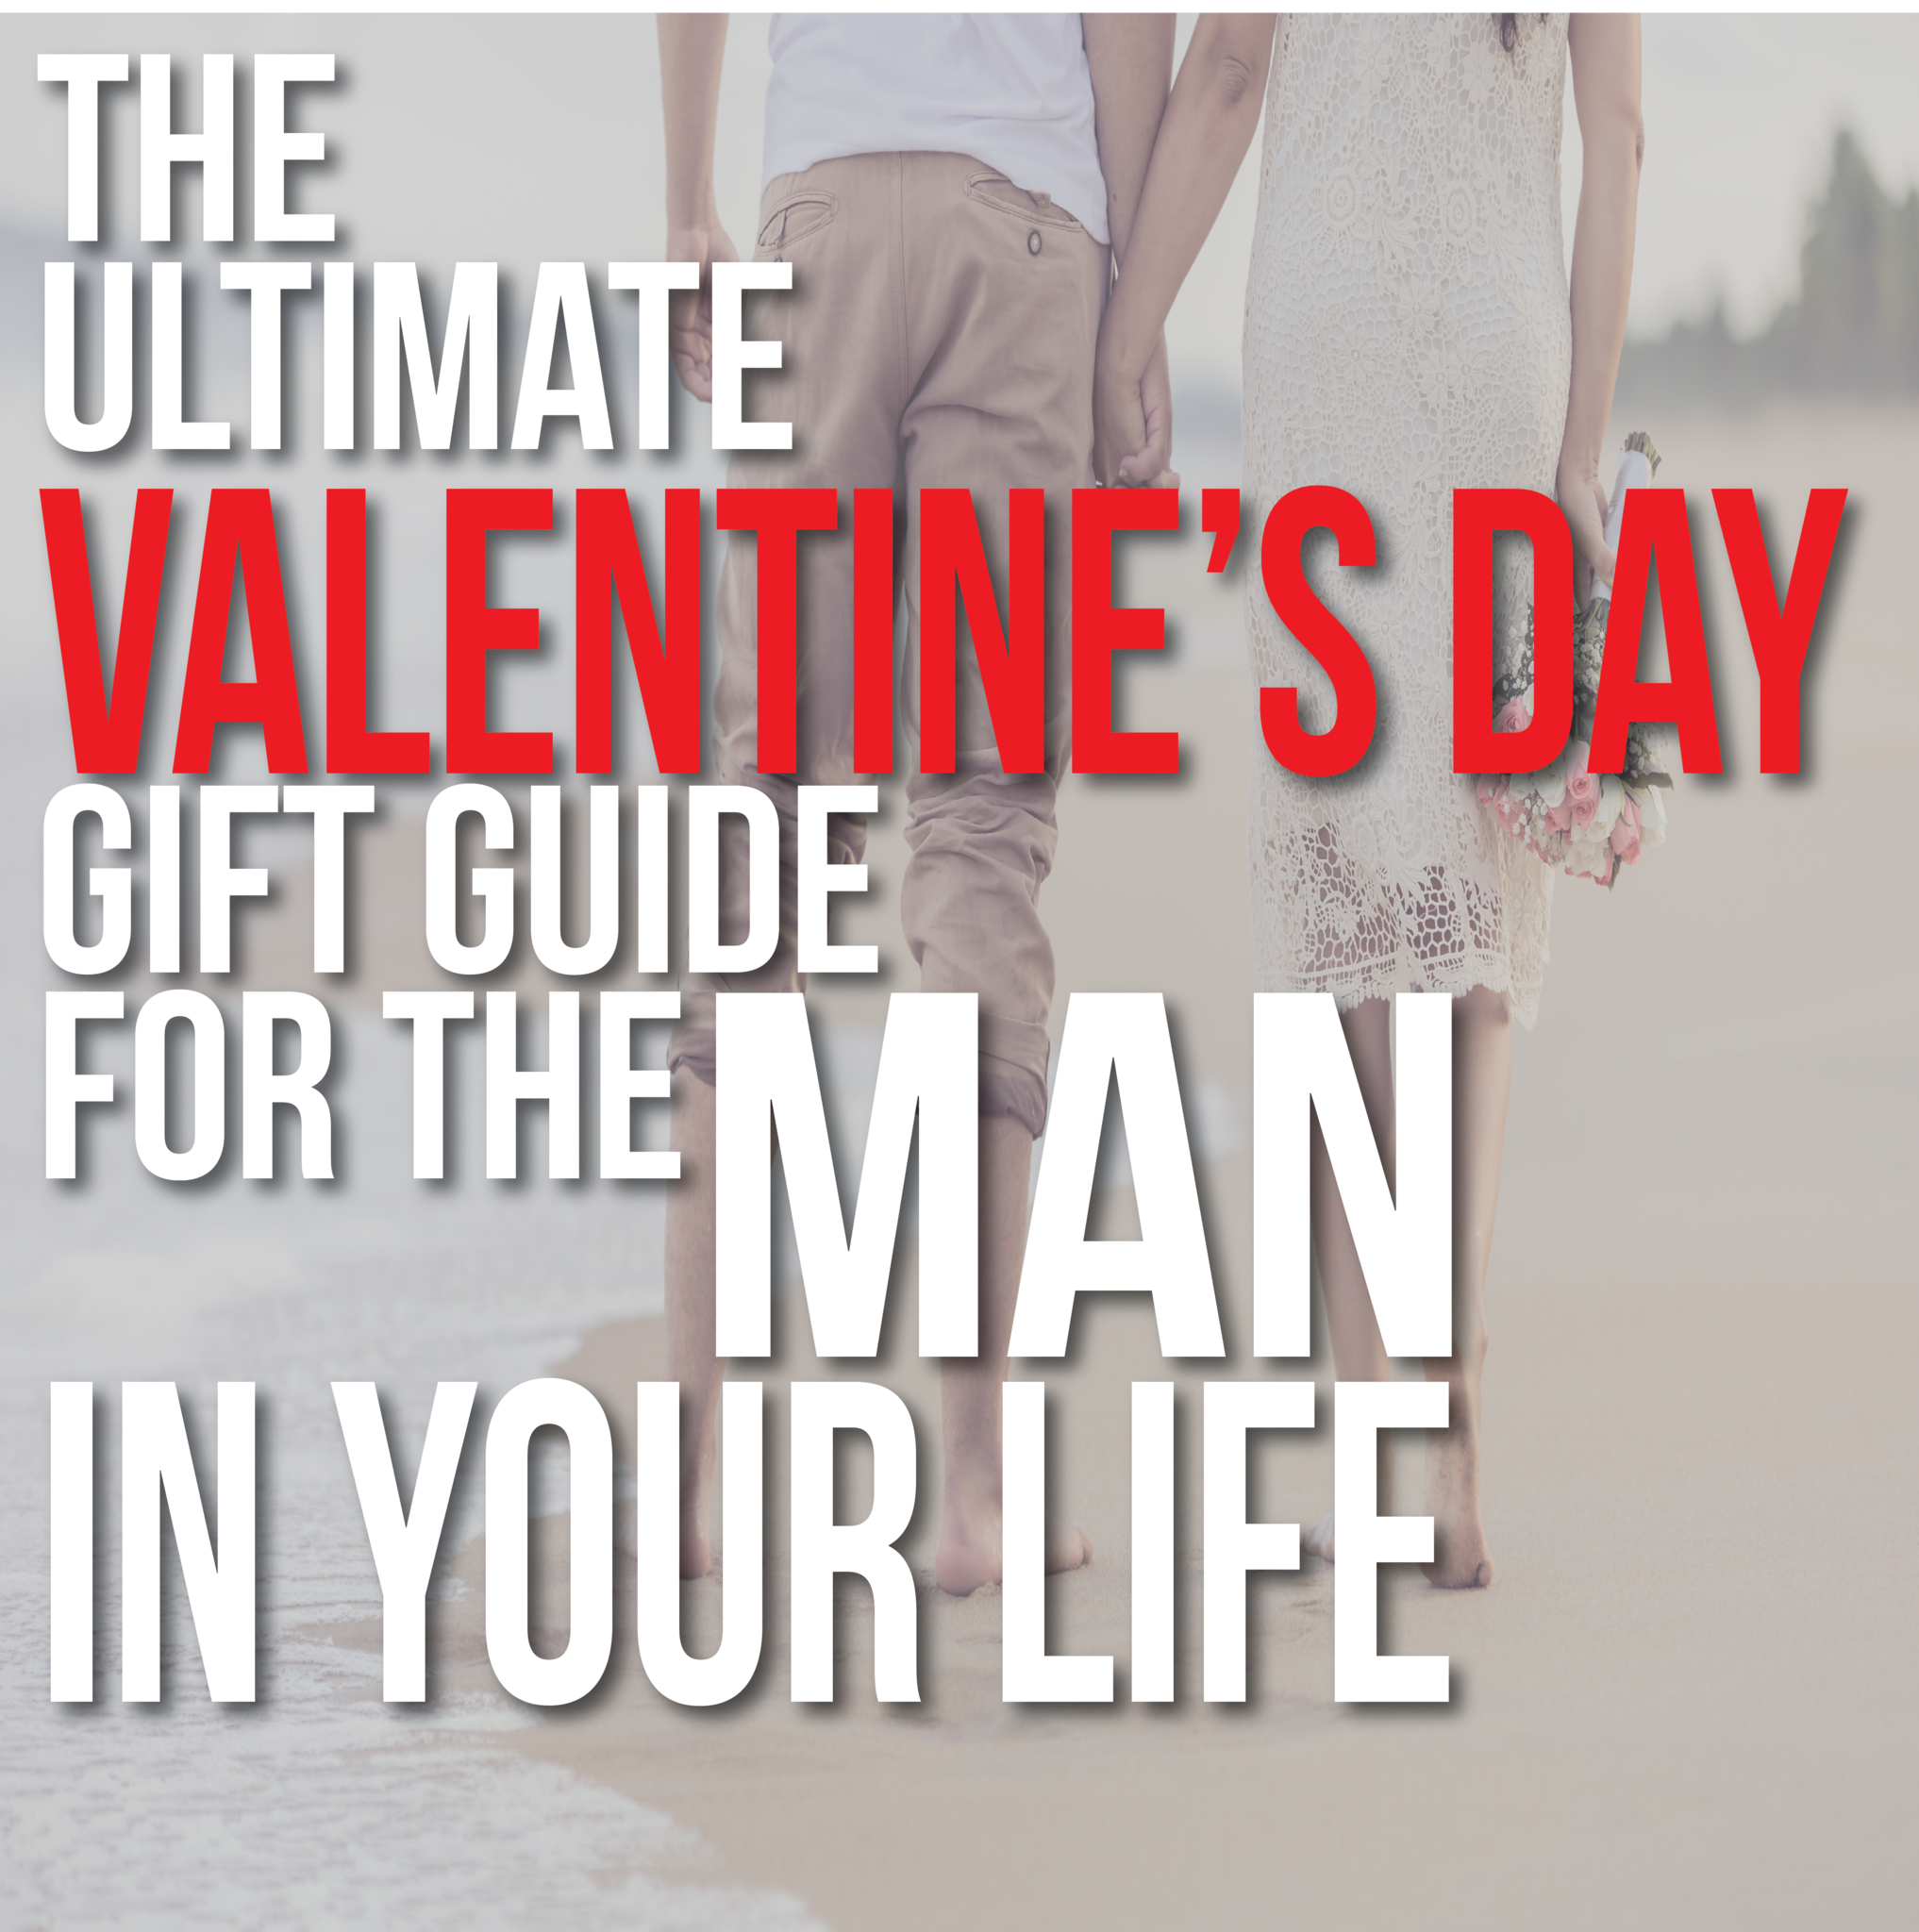 The Ultimate Valentine's Day Gift Guide for Men